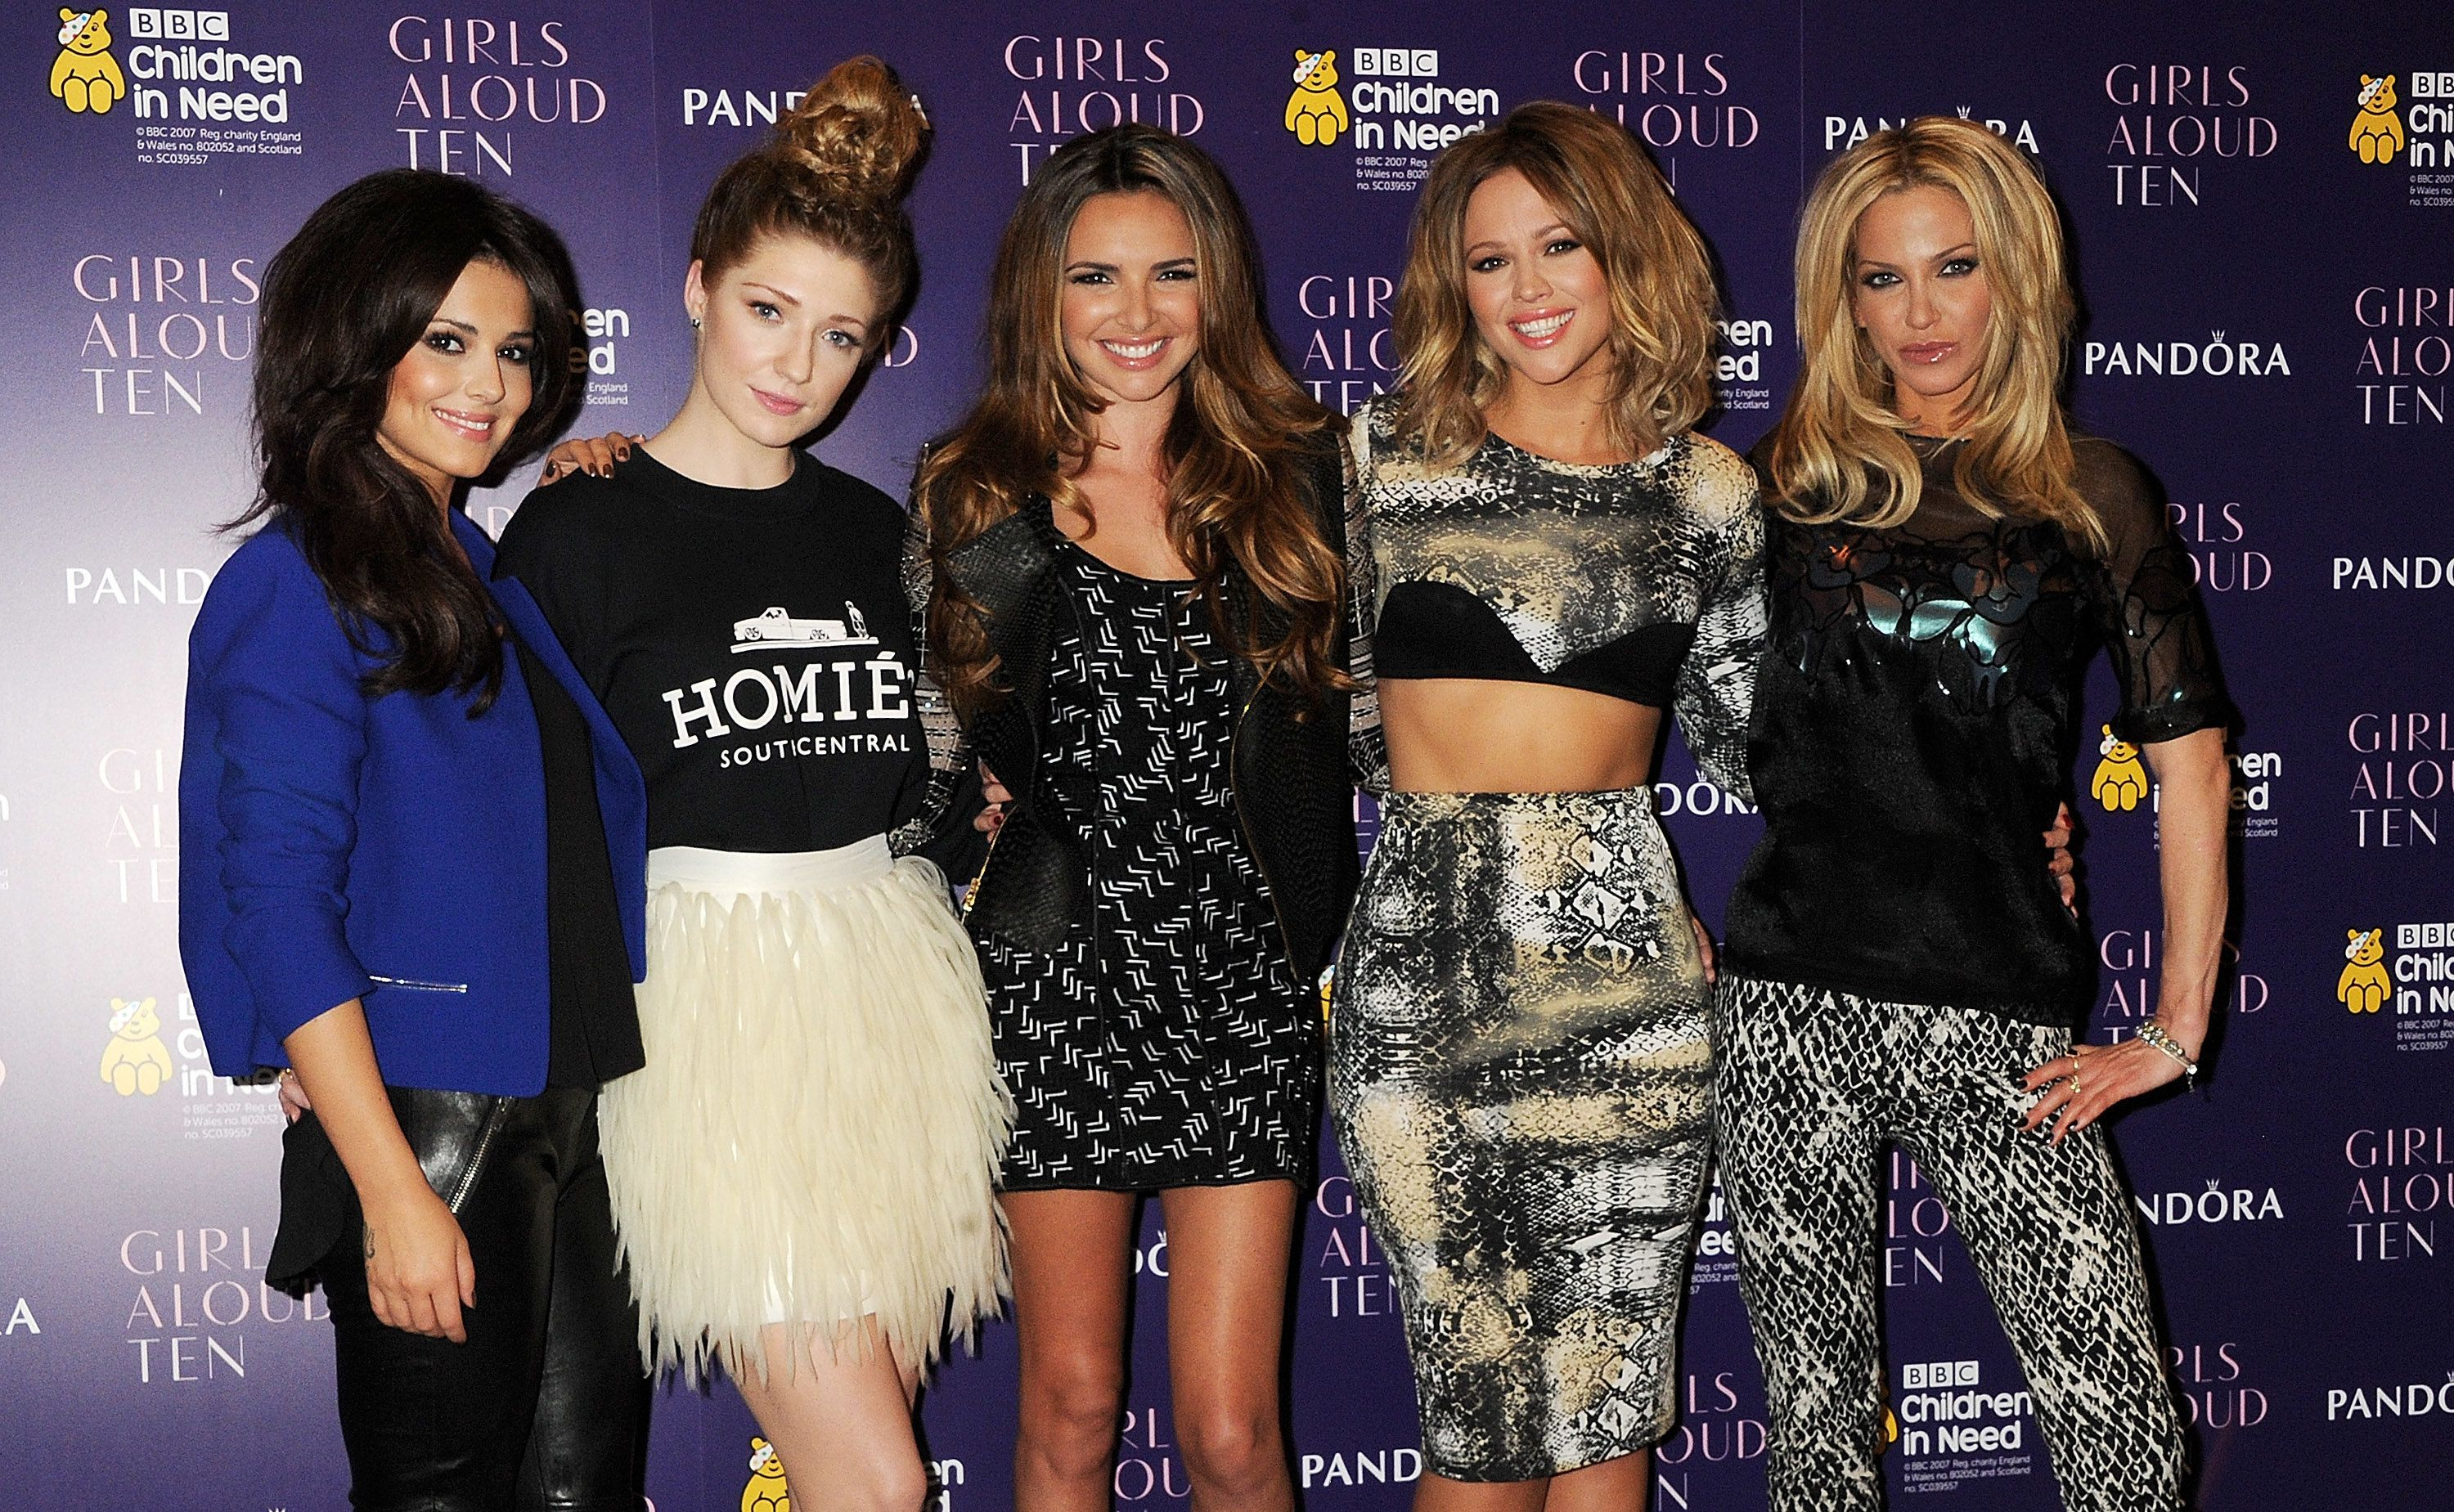 Nadine Coyle opens up about Girls Aloud's 'bitter' split